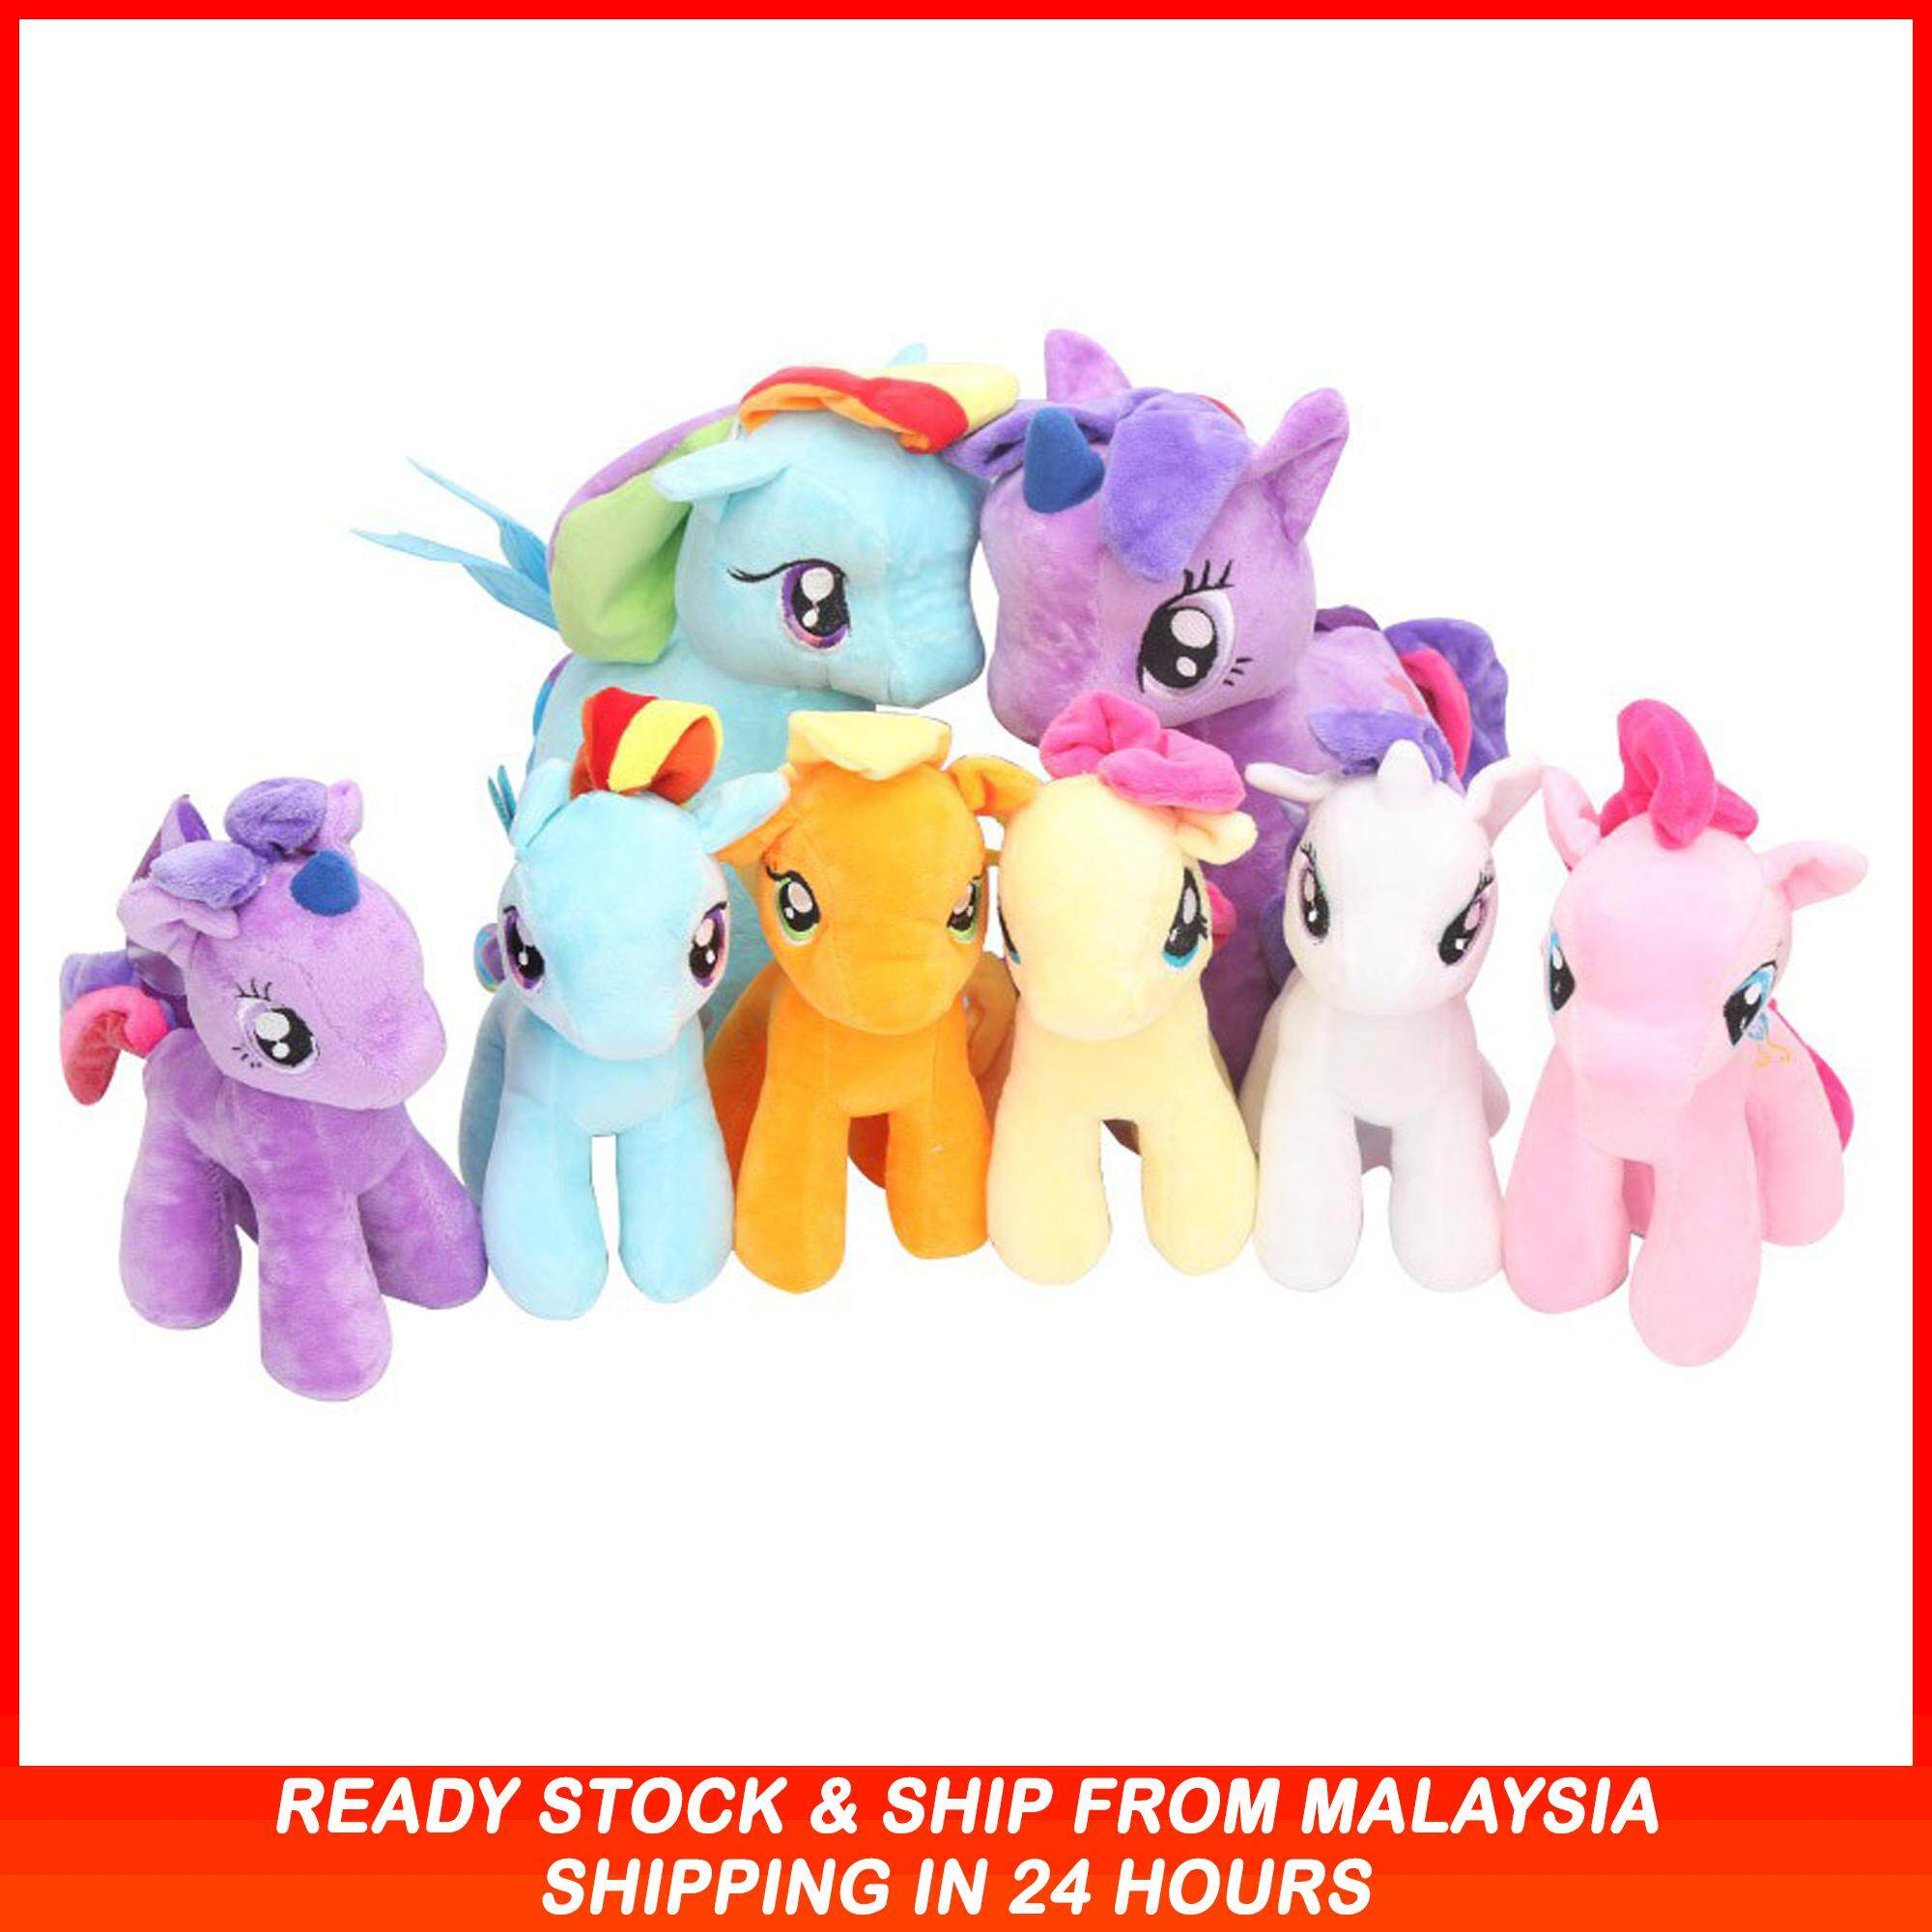 25cm My Little Pony Plush Toys Stuffed Toys Soft Toys Unicorn Horse For Kids Gift 6 Colours By Bizworld2u.